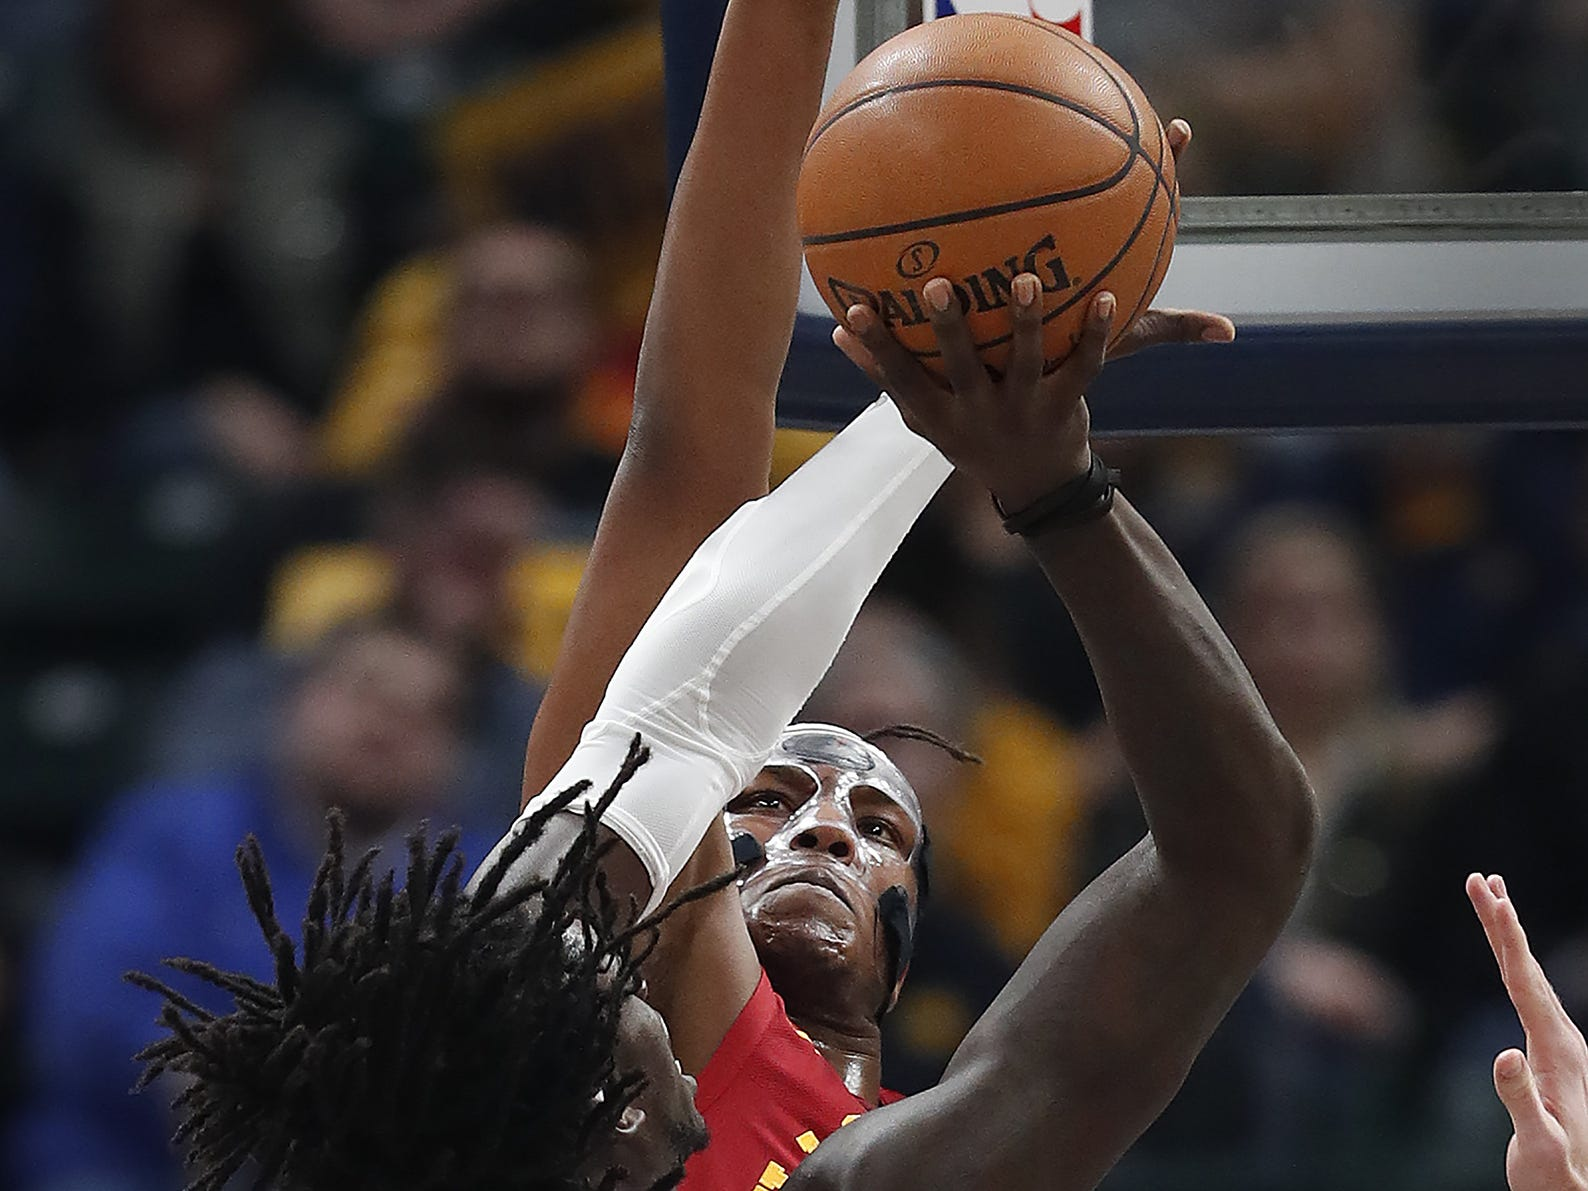 Indiana Pacers center Myles Turner (33) defends the shot by LA Clippers forward Johnathan Motley (15) in the first half of their game at Bankers Life Fieldhouse on Thursday, Feb. 7, 2019.